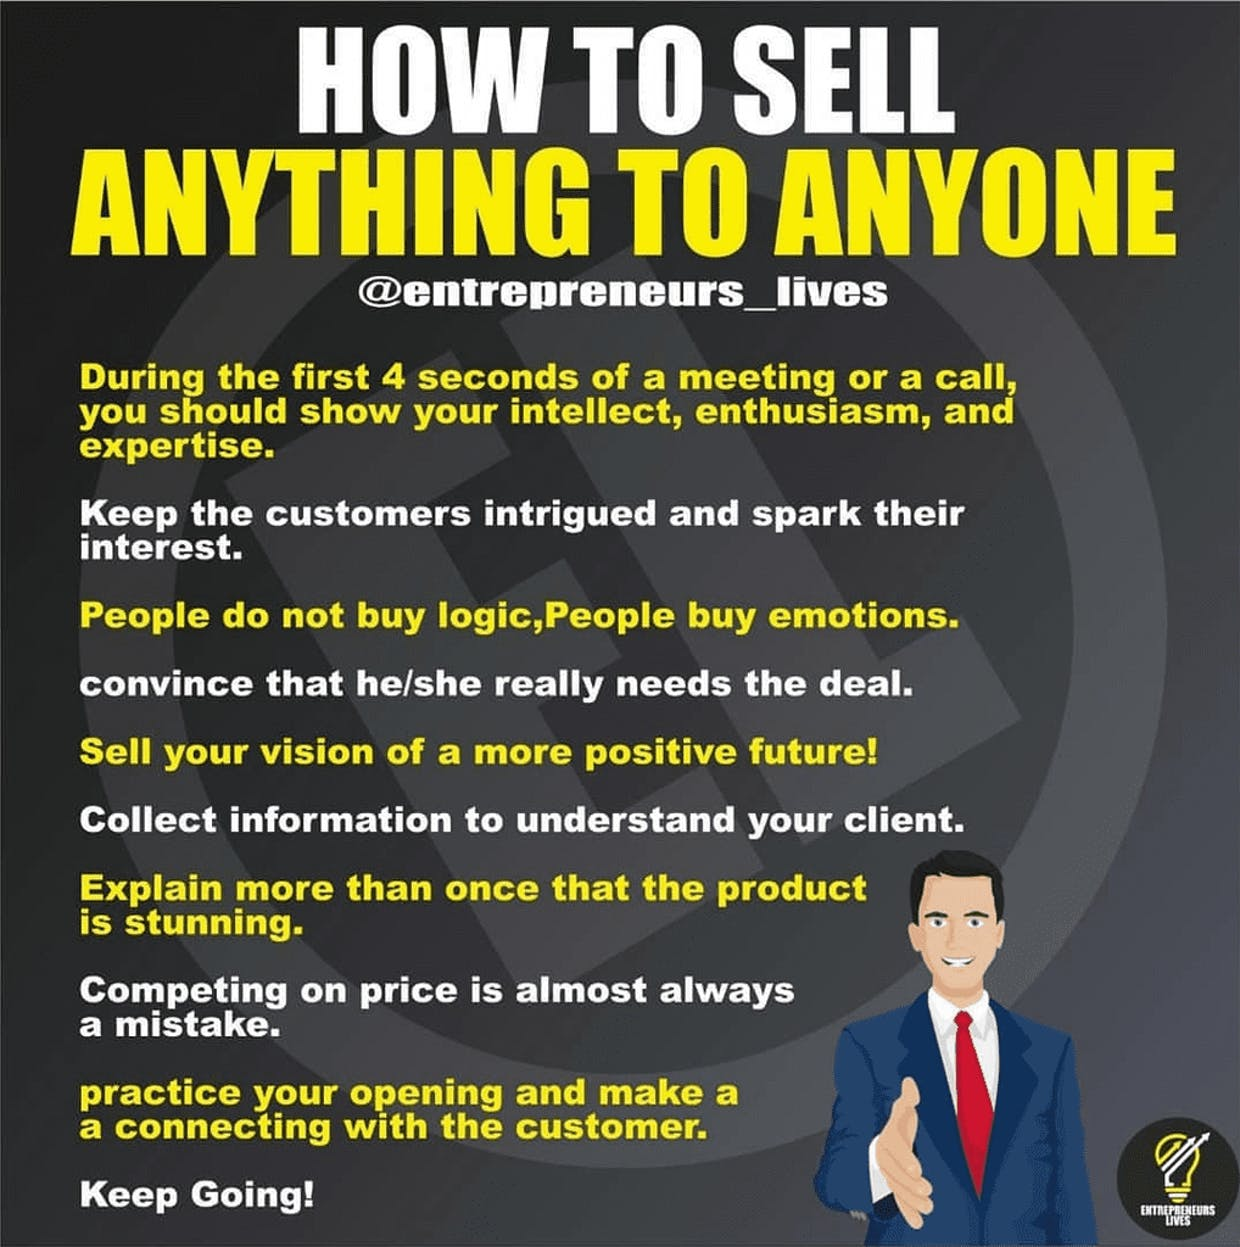 Tips for selling